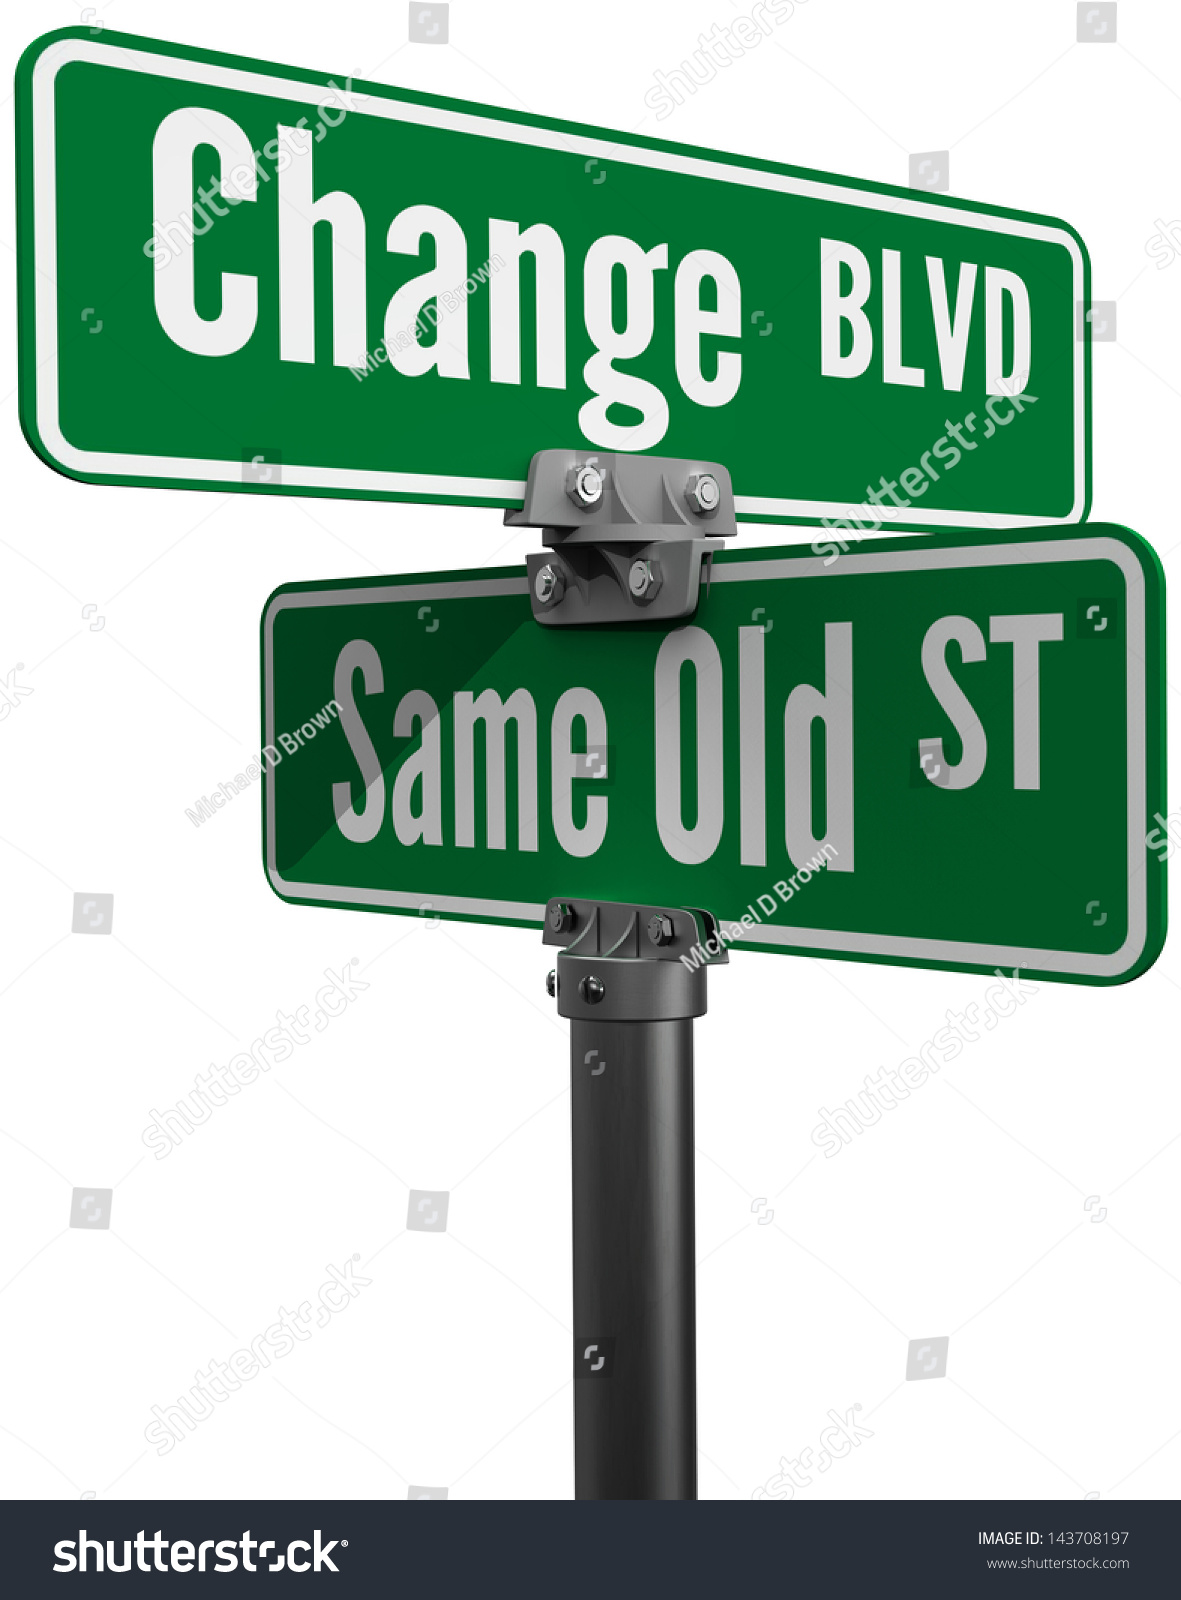 7 tips for dealing with change